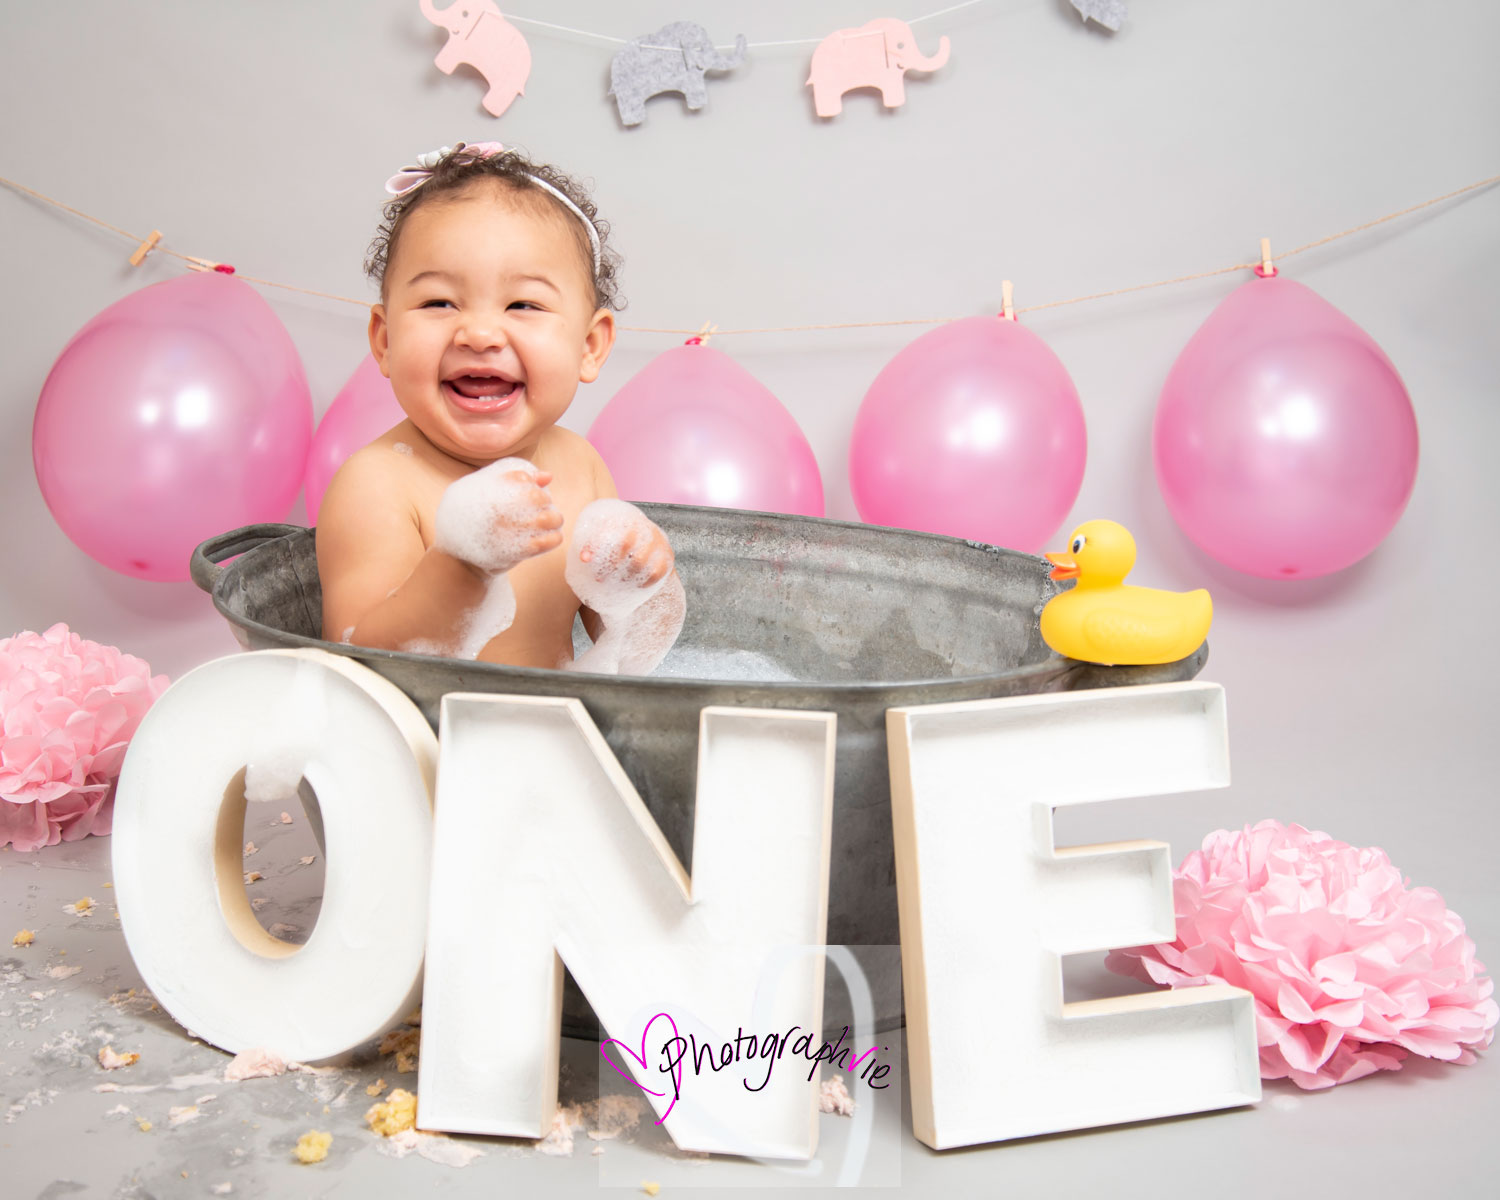 cake smash photoshoot bath bubbles one balloons smiley baby photos.jpg